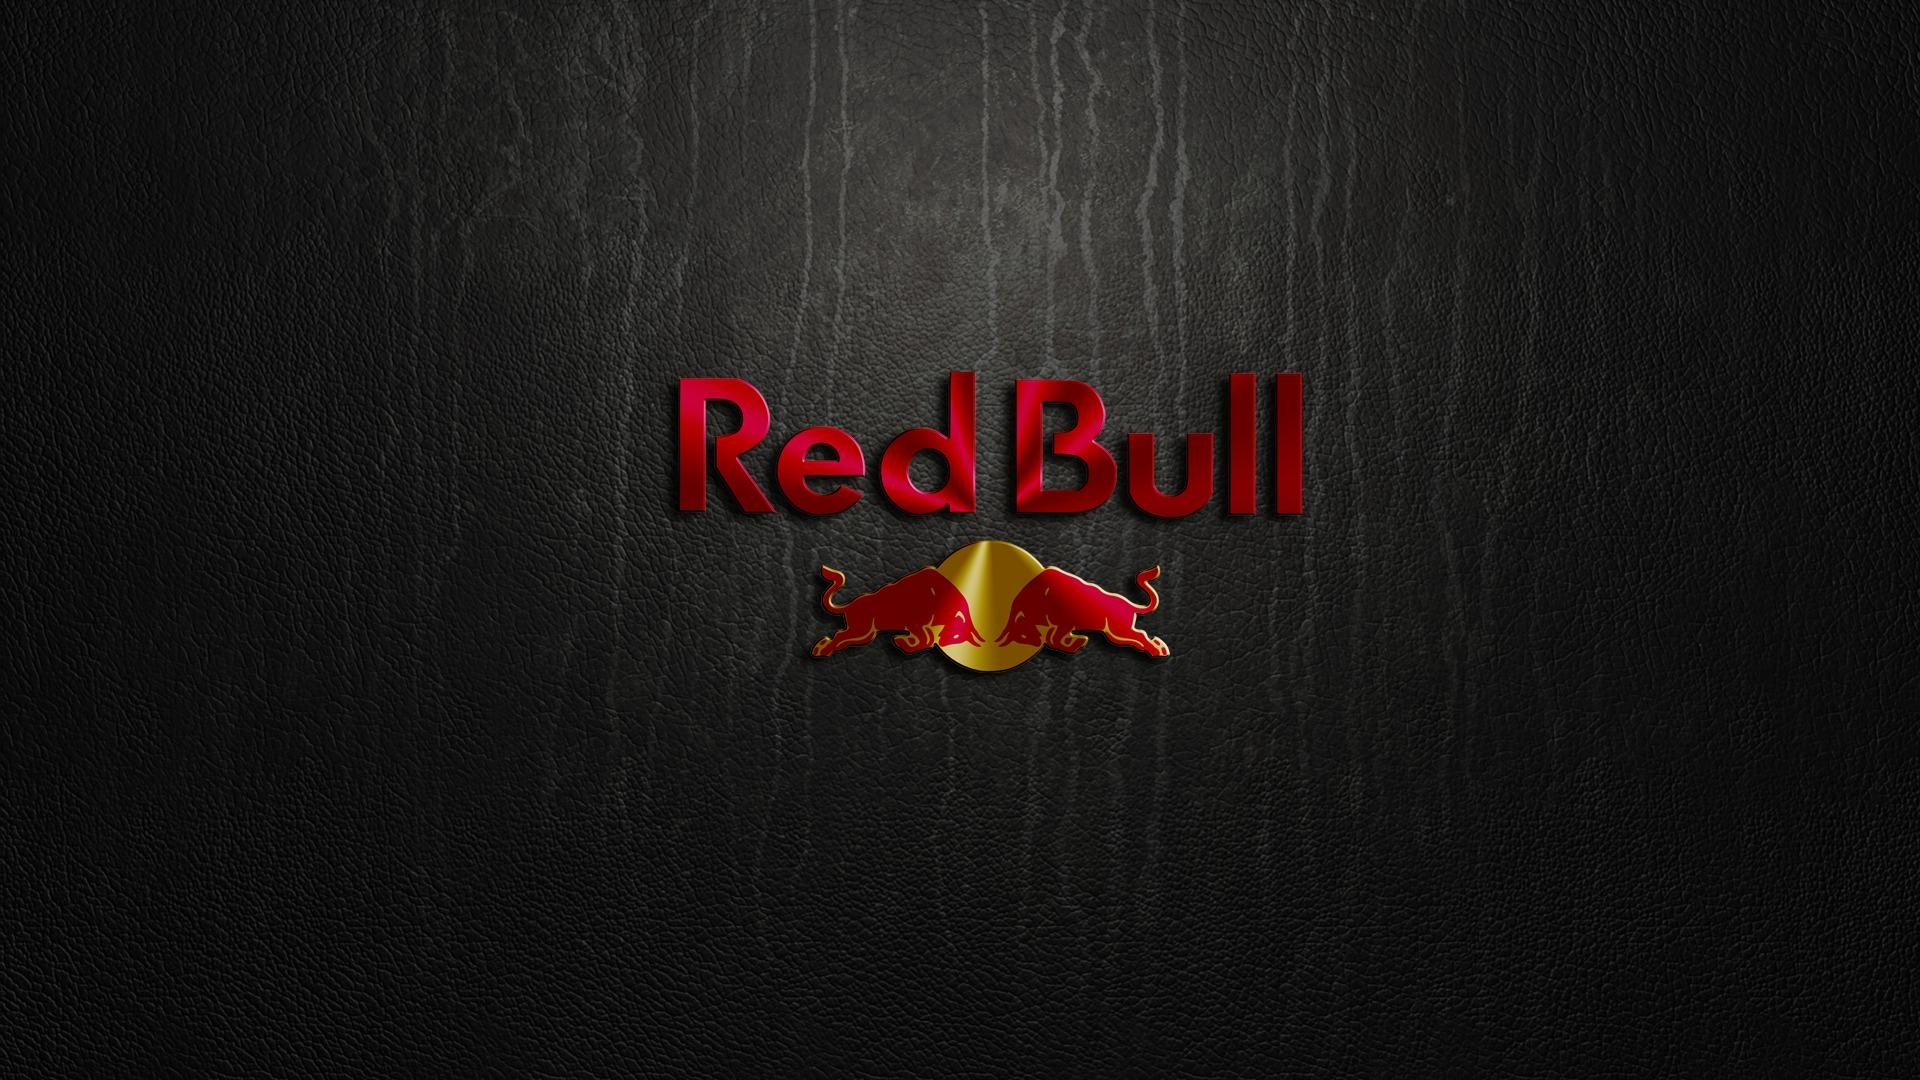 free download red bull logo wallpapers - wallpaper.wiki